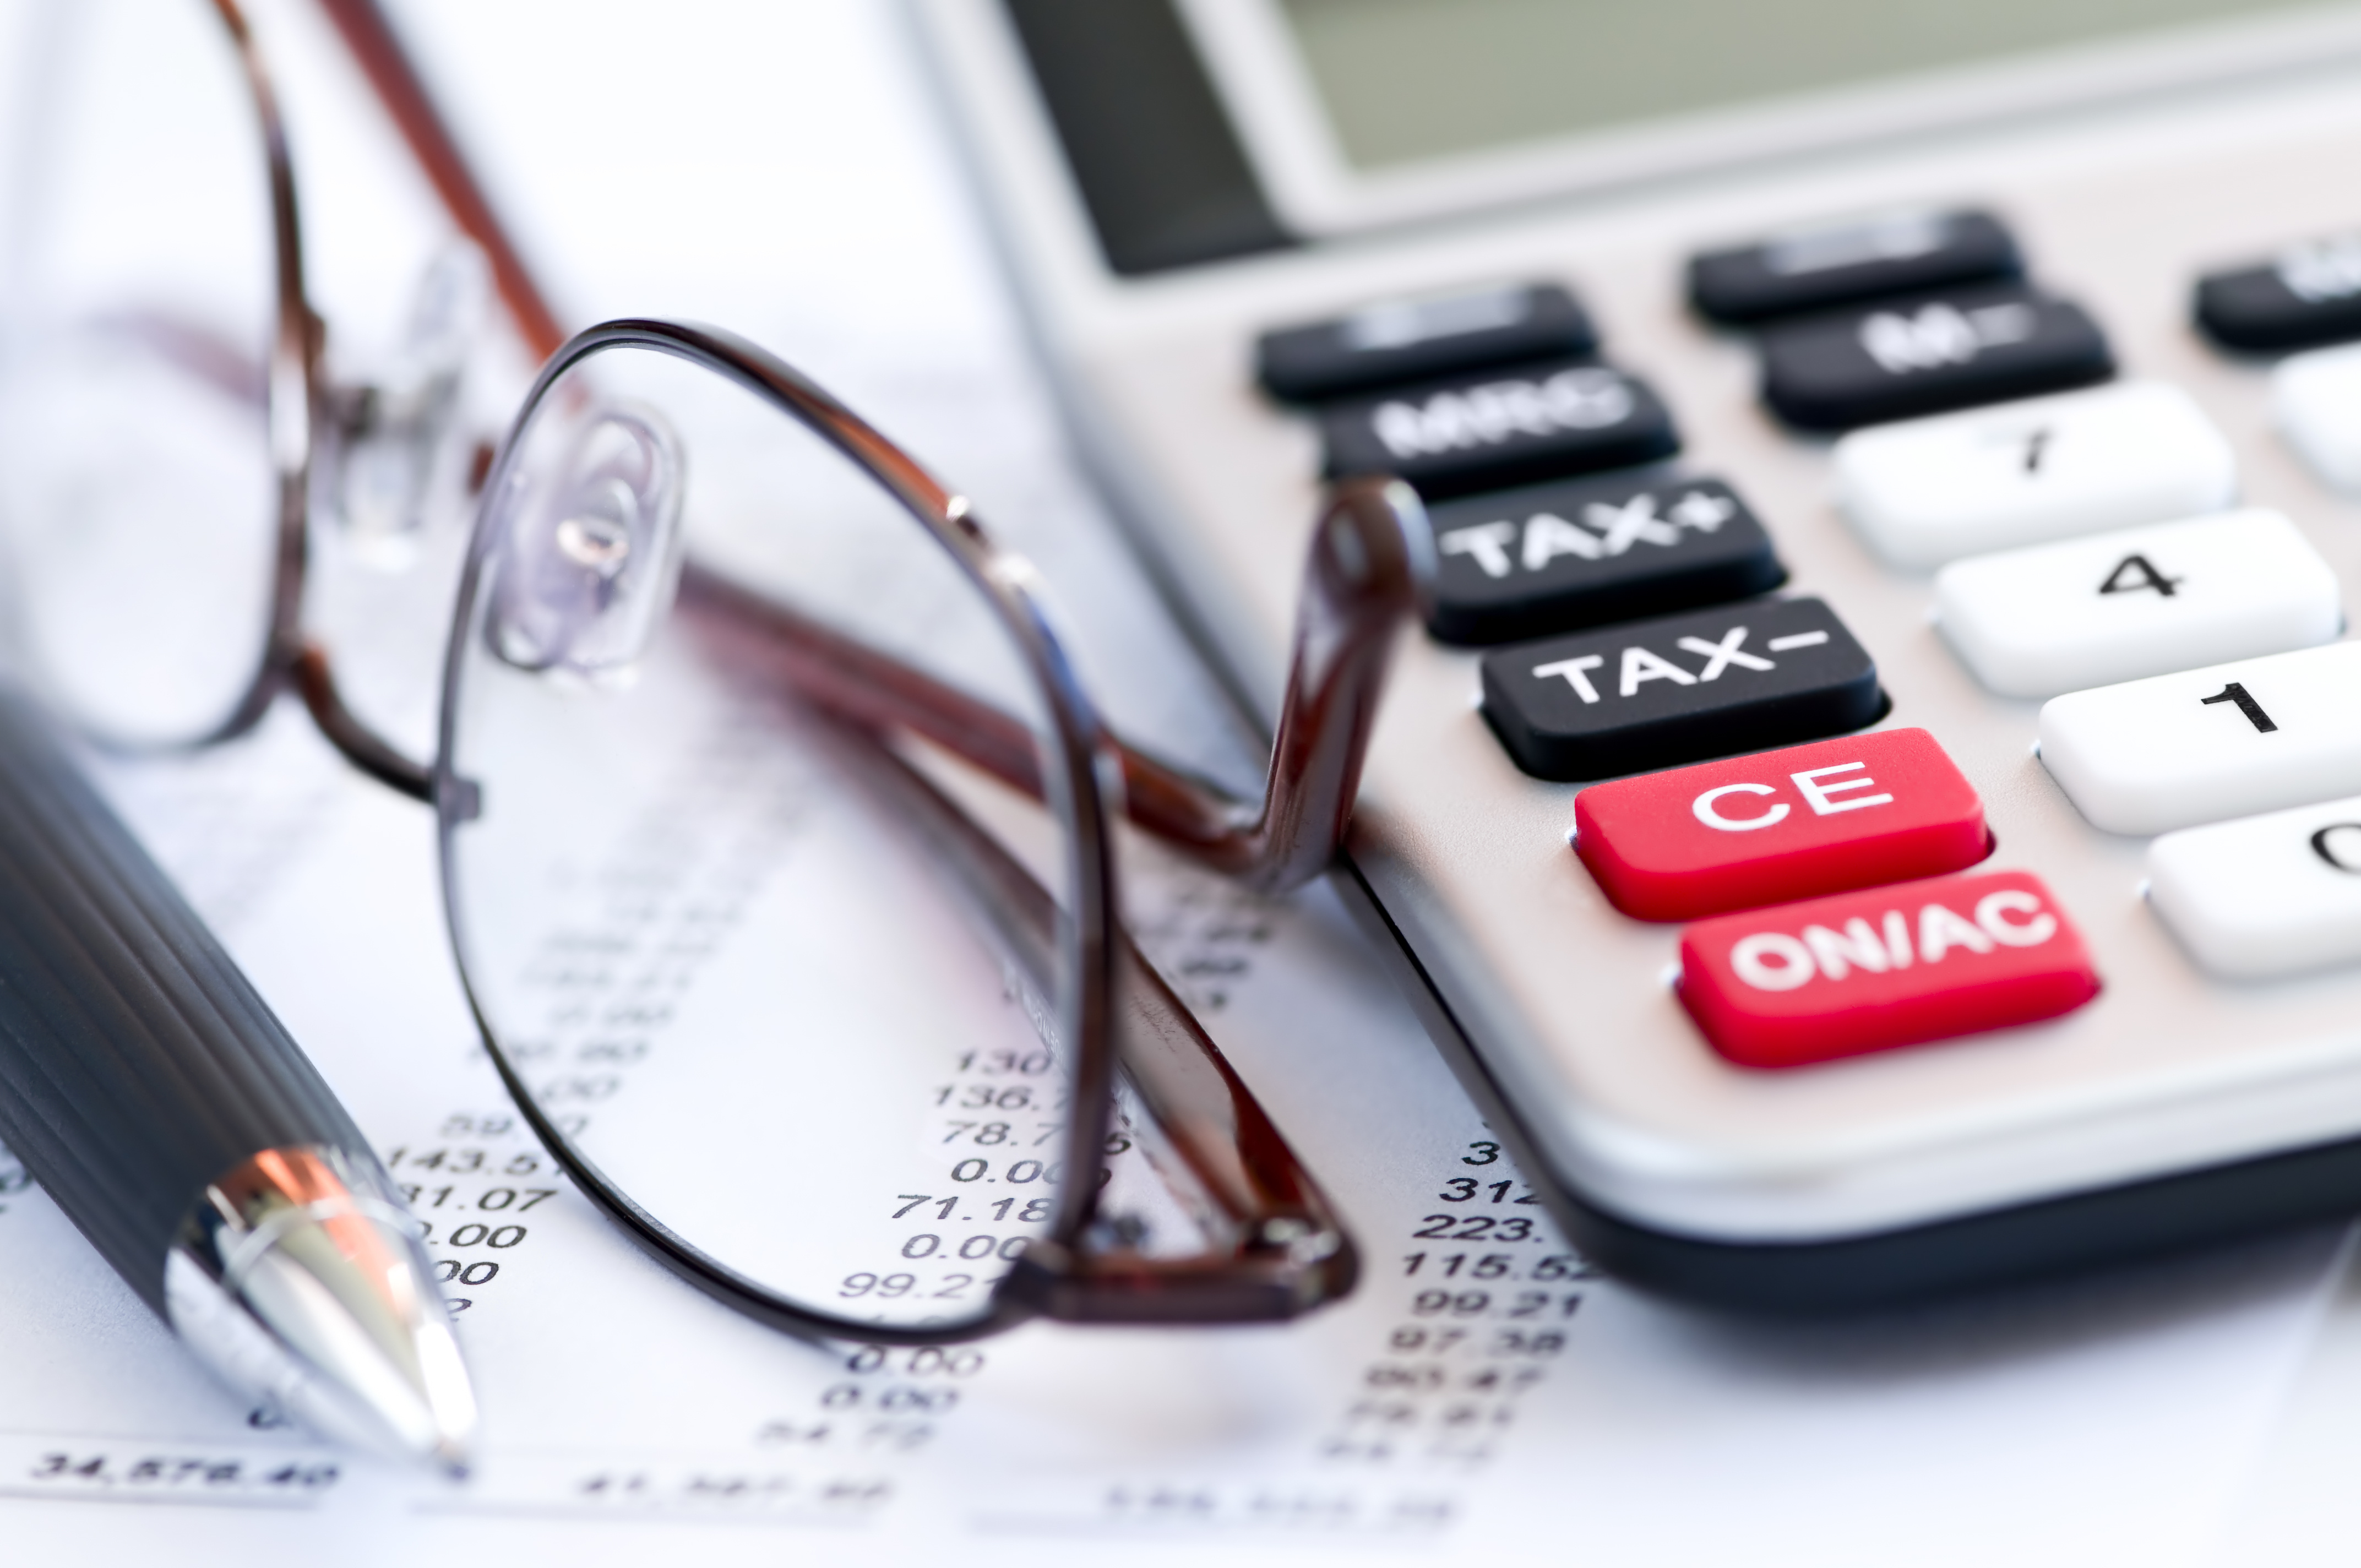 Income Tax Training & Certification in karachi | Online Income Tax Certification in karachi